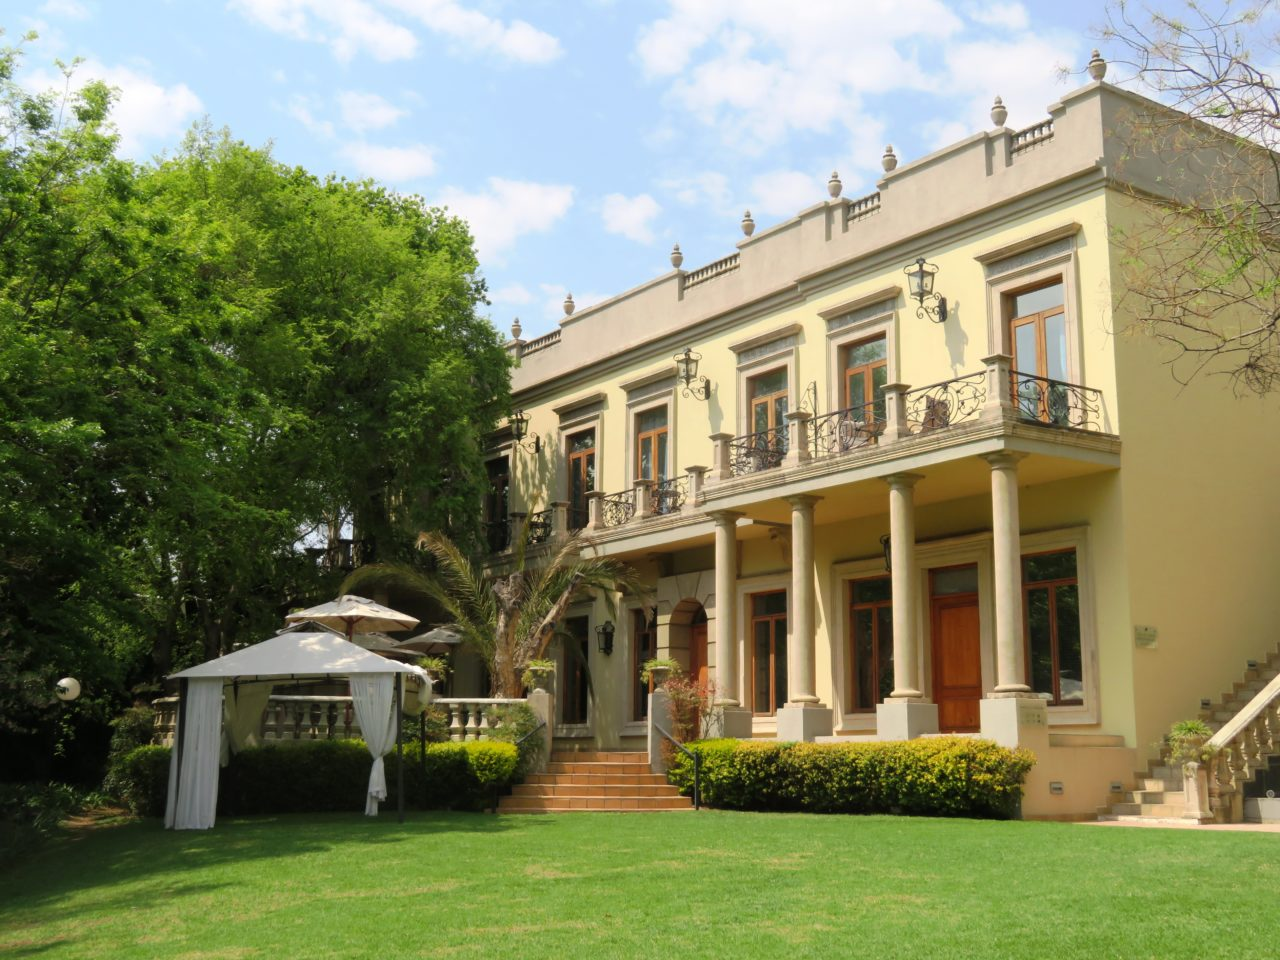 Fairlawns Boutique Hotel & Spa - Johannesburg, South Africa